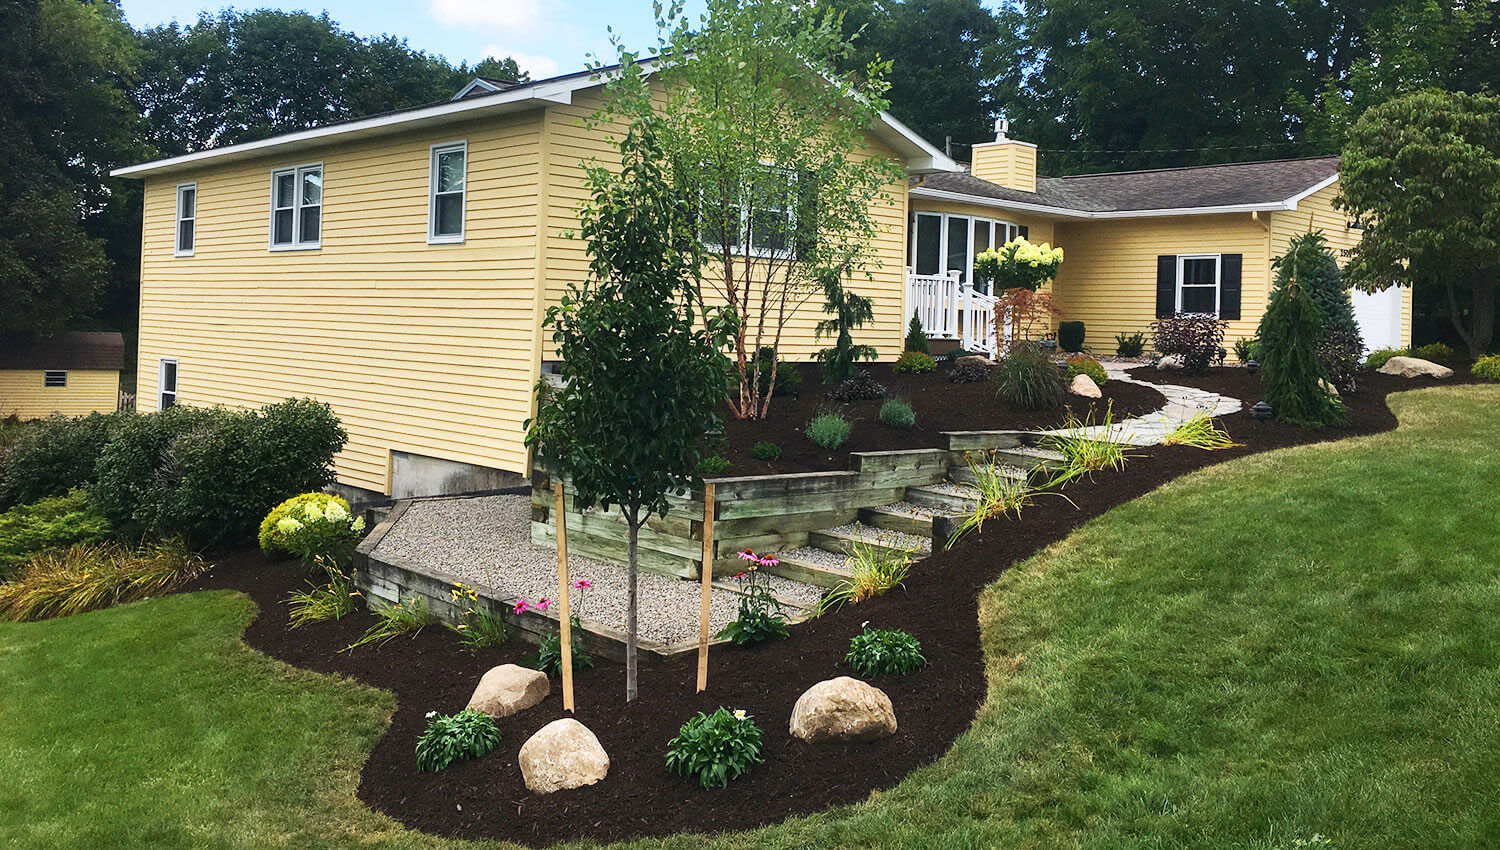 Outdoor Landscape Design-Arlington TX Professional Landscapers & Outdoor Living Designs-We offer Landscape Design, Outdoor Patios & Pergolas, Outdoor Living Spaces, Stonescapes, Residential & Commercial Landscaping, Irrigation Installation & Repairs, Drainage Systems, Landscape Lighting, Outdoor Living Spaces, Tree Service, Lawn Service, and more.